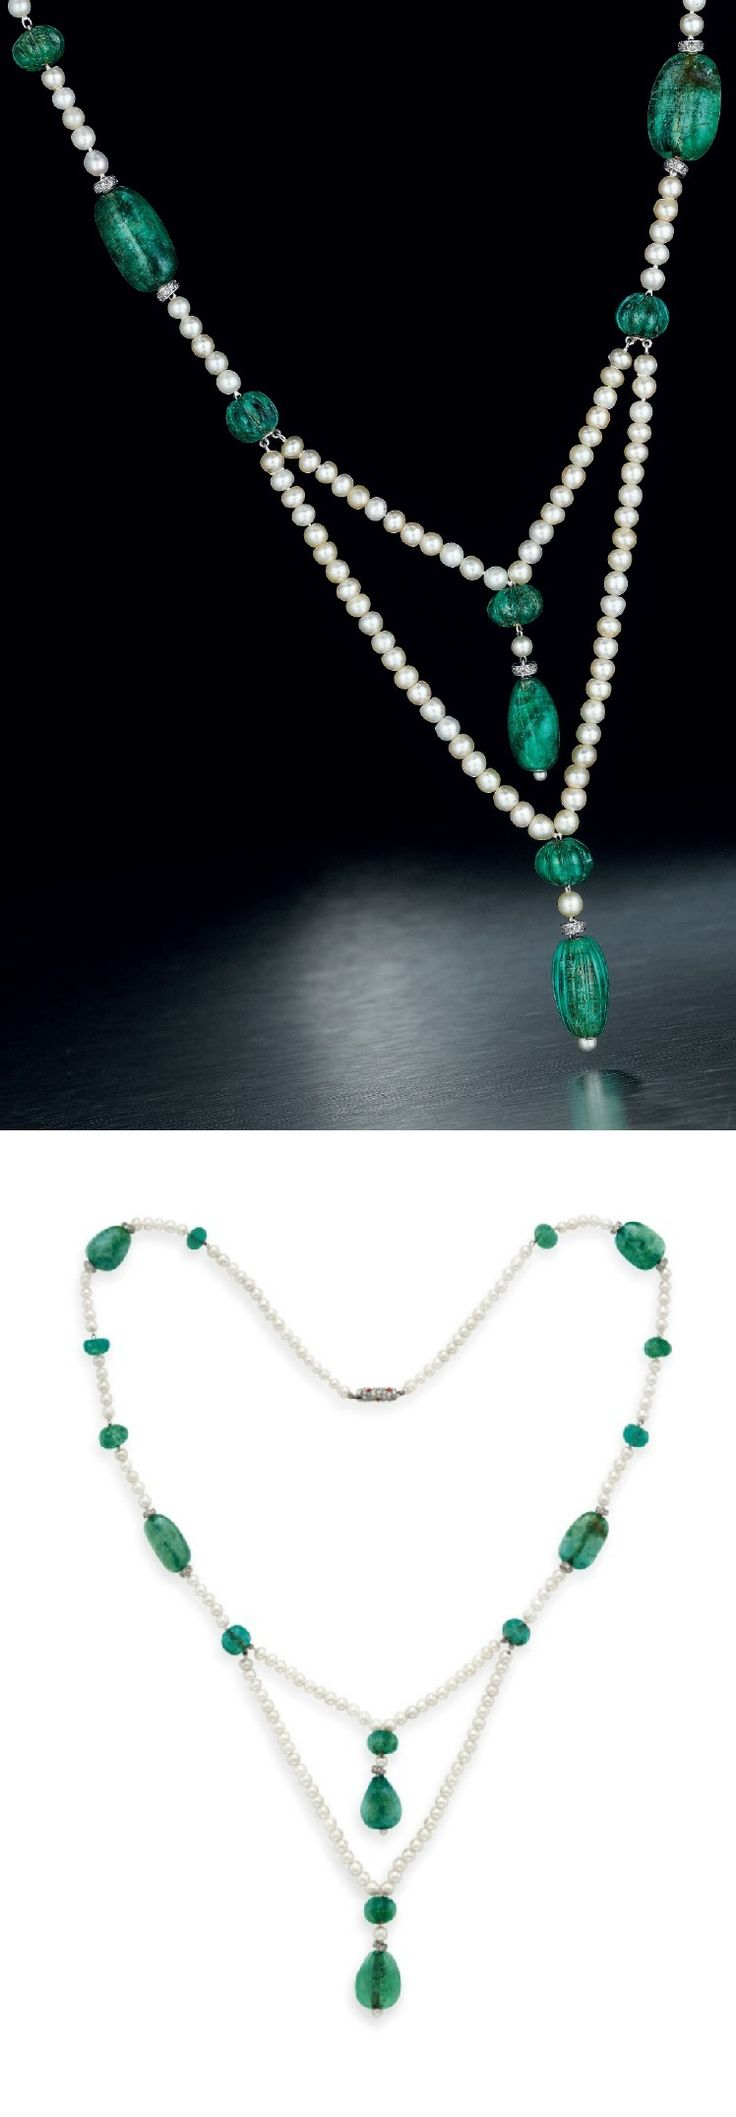 CARTIER - AN ELEGANT ART DECO EMERALD, DIAMOND AND PEARL NECKLACE, CIRCA 1925. The front designed as a two-strand pearl swag, suspending lines of reeded and smooth emerald beads, single-cut diamond rondelles and pearls, to the neckchain of similar design, joined by a single-cut diamond and cabochon coral barrel clasp, mounted in platinum, signed Cartier, numbered.